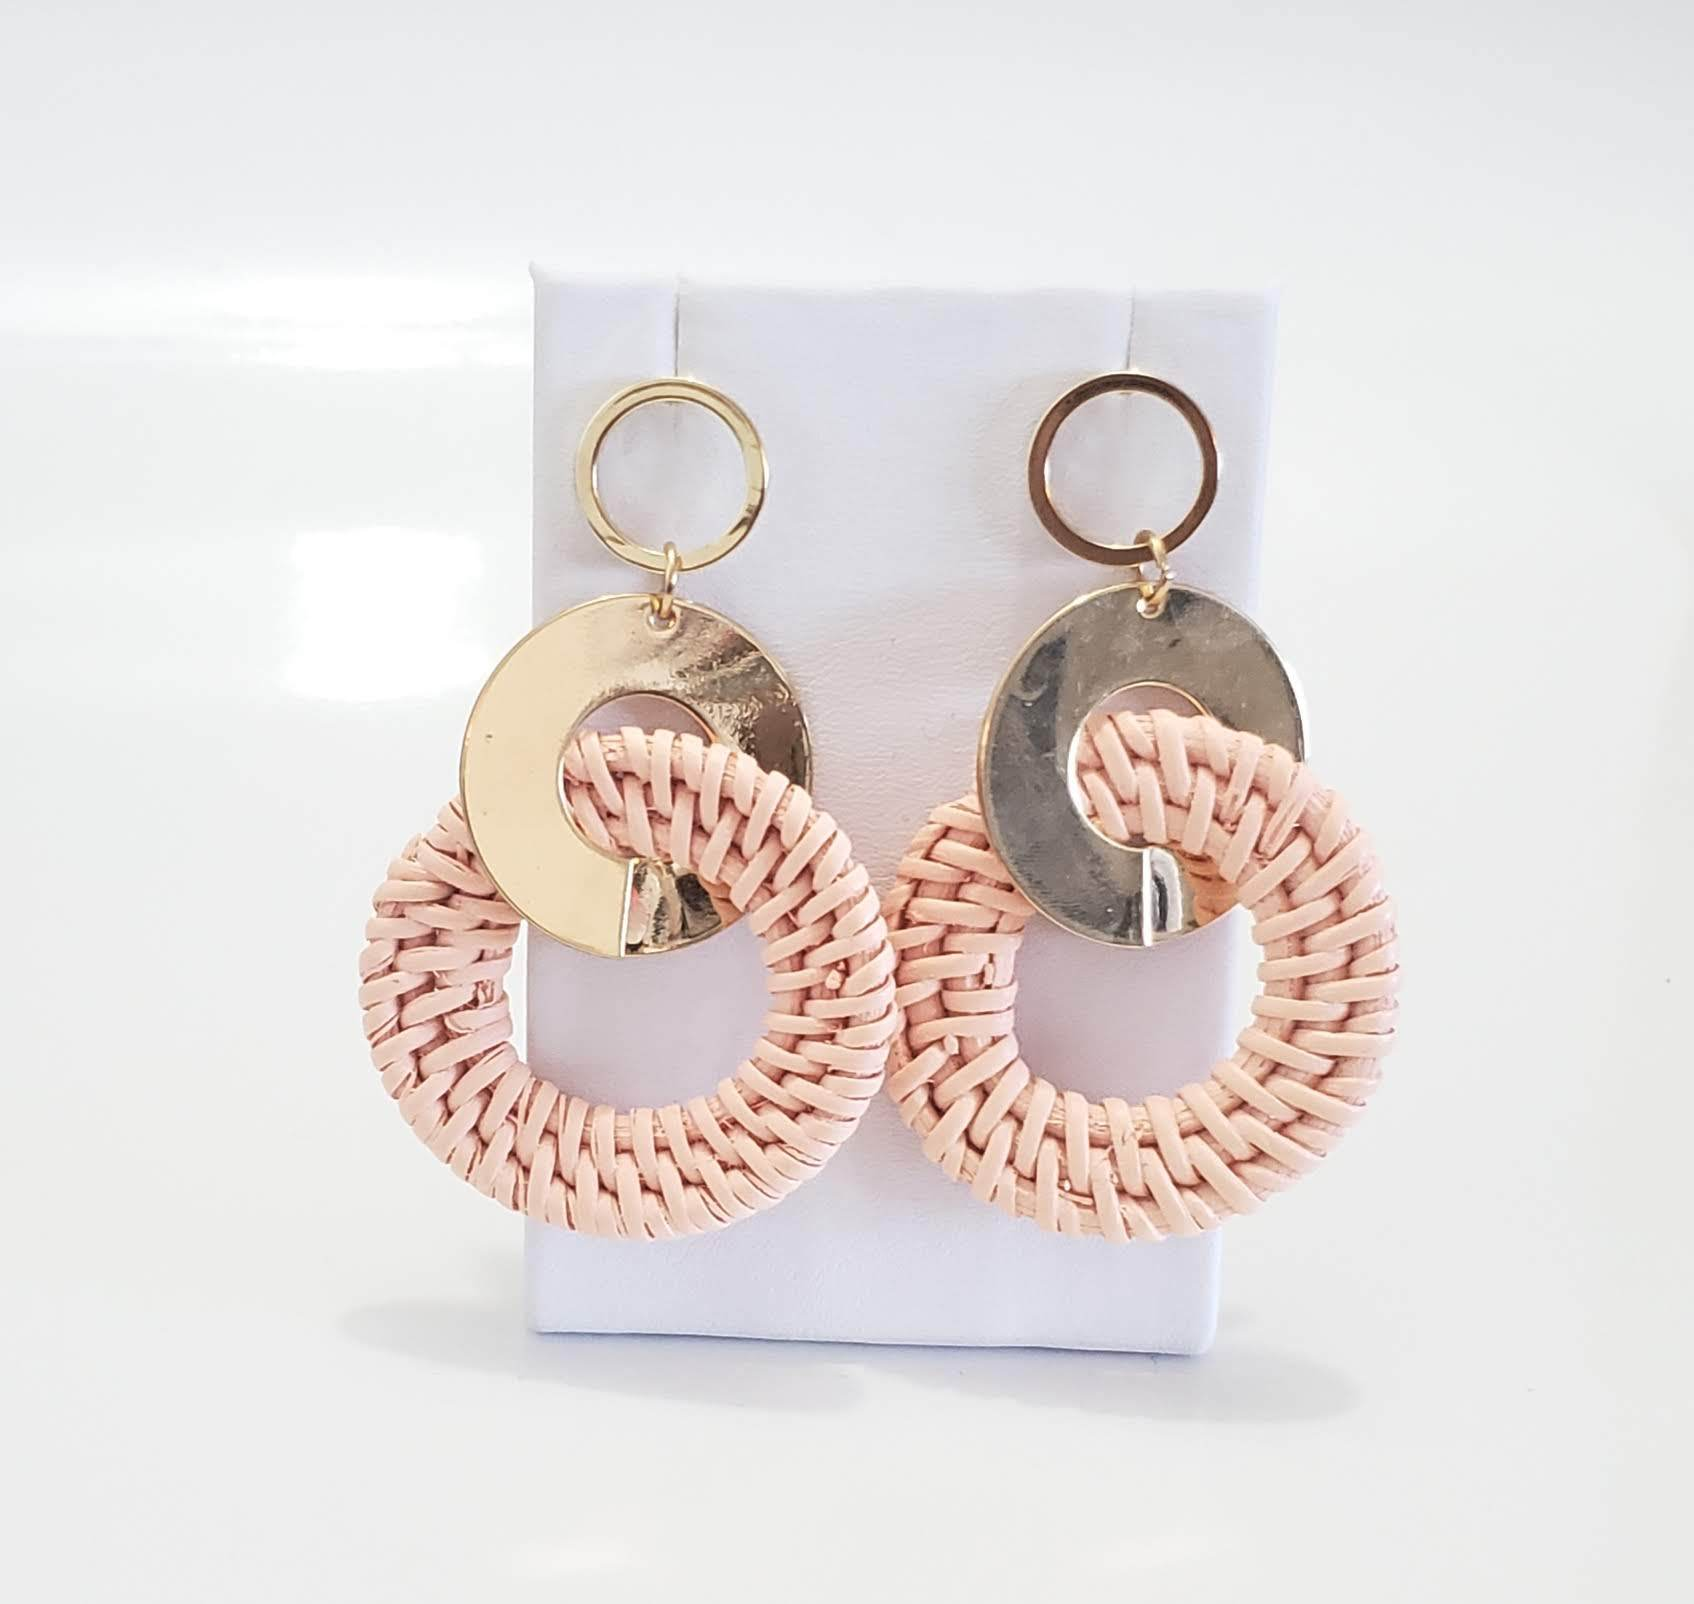 Cote Chic Round Drop Earrings